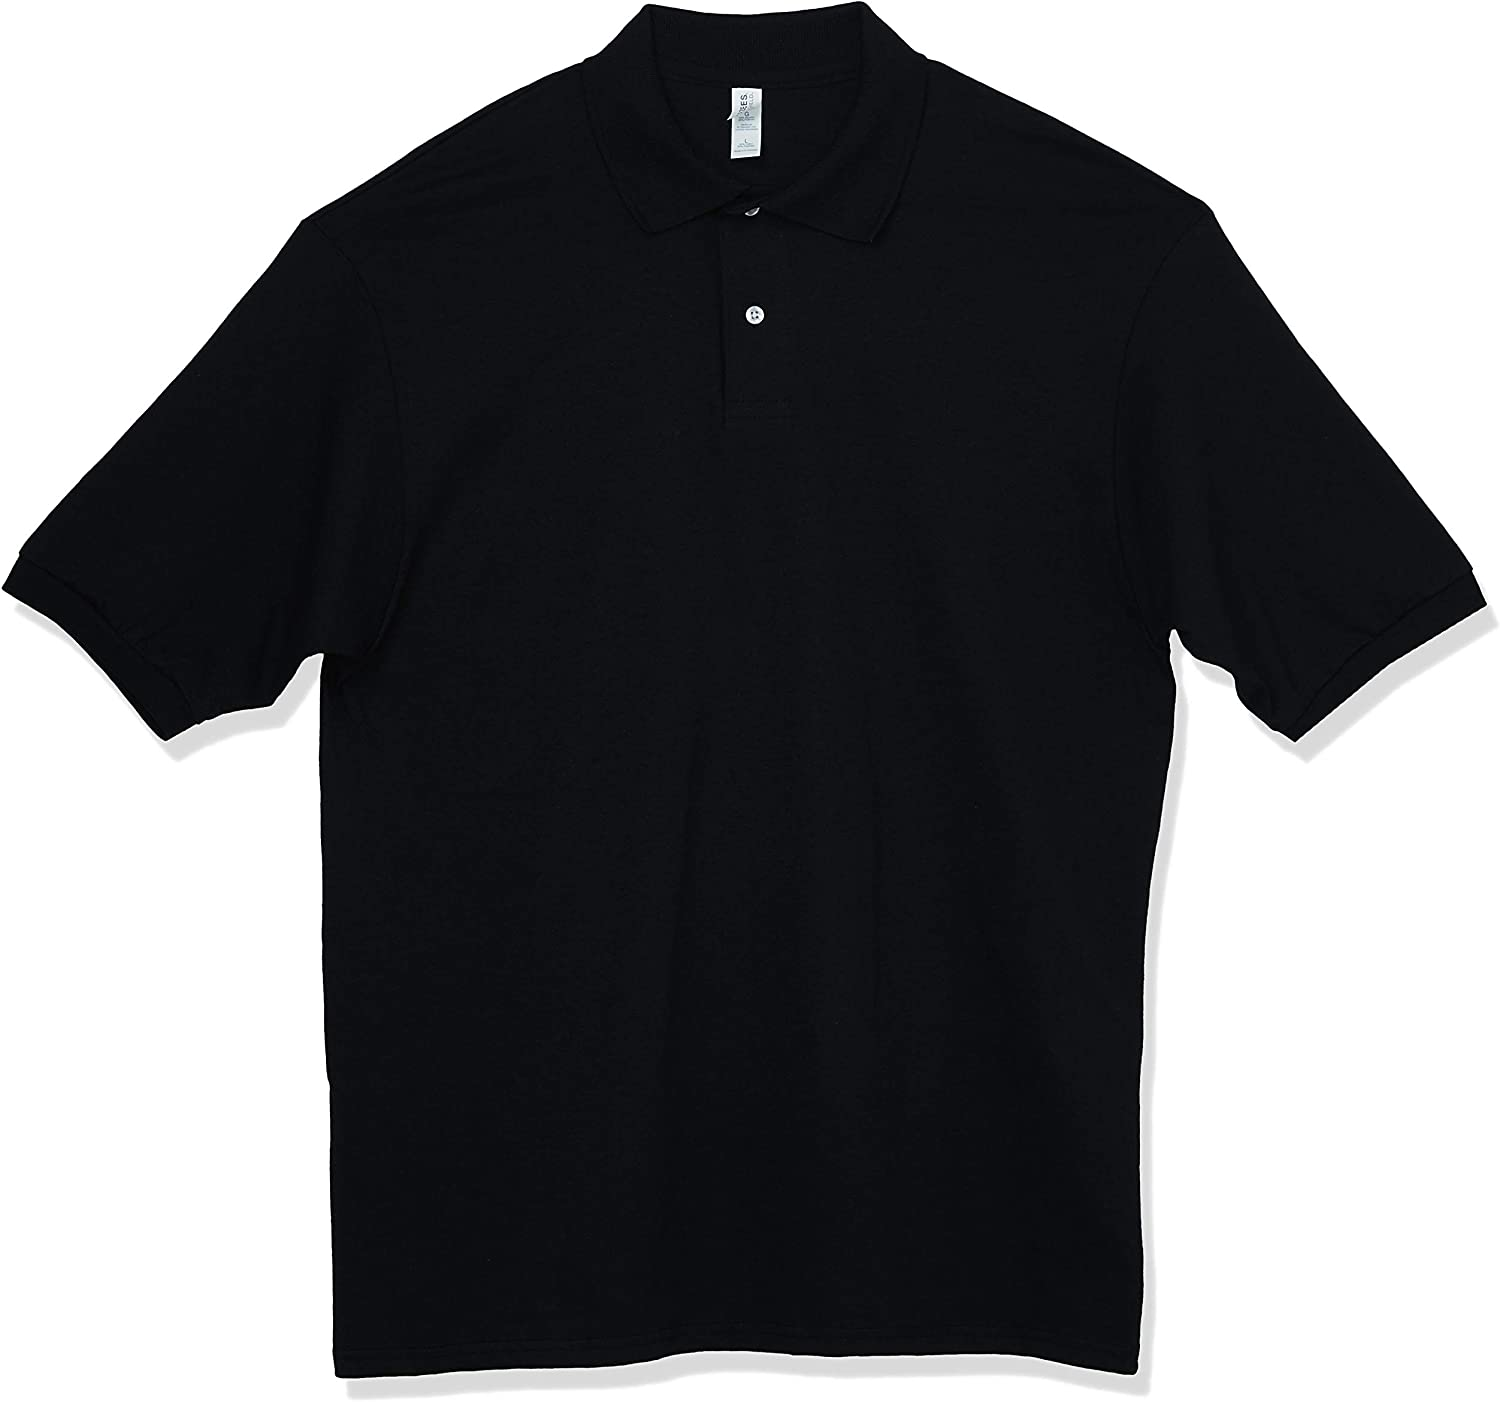 Short /& Long Sleeve Jerzees Mens SpotShield Stain Resistant Polo Shirts